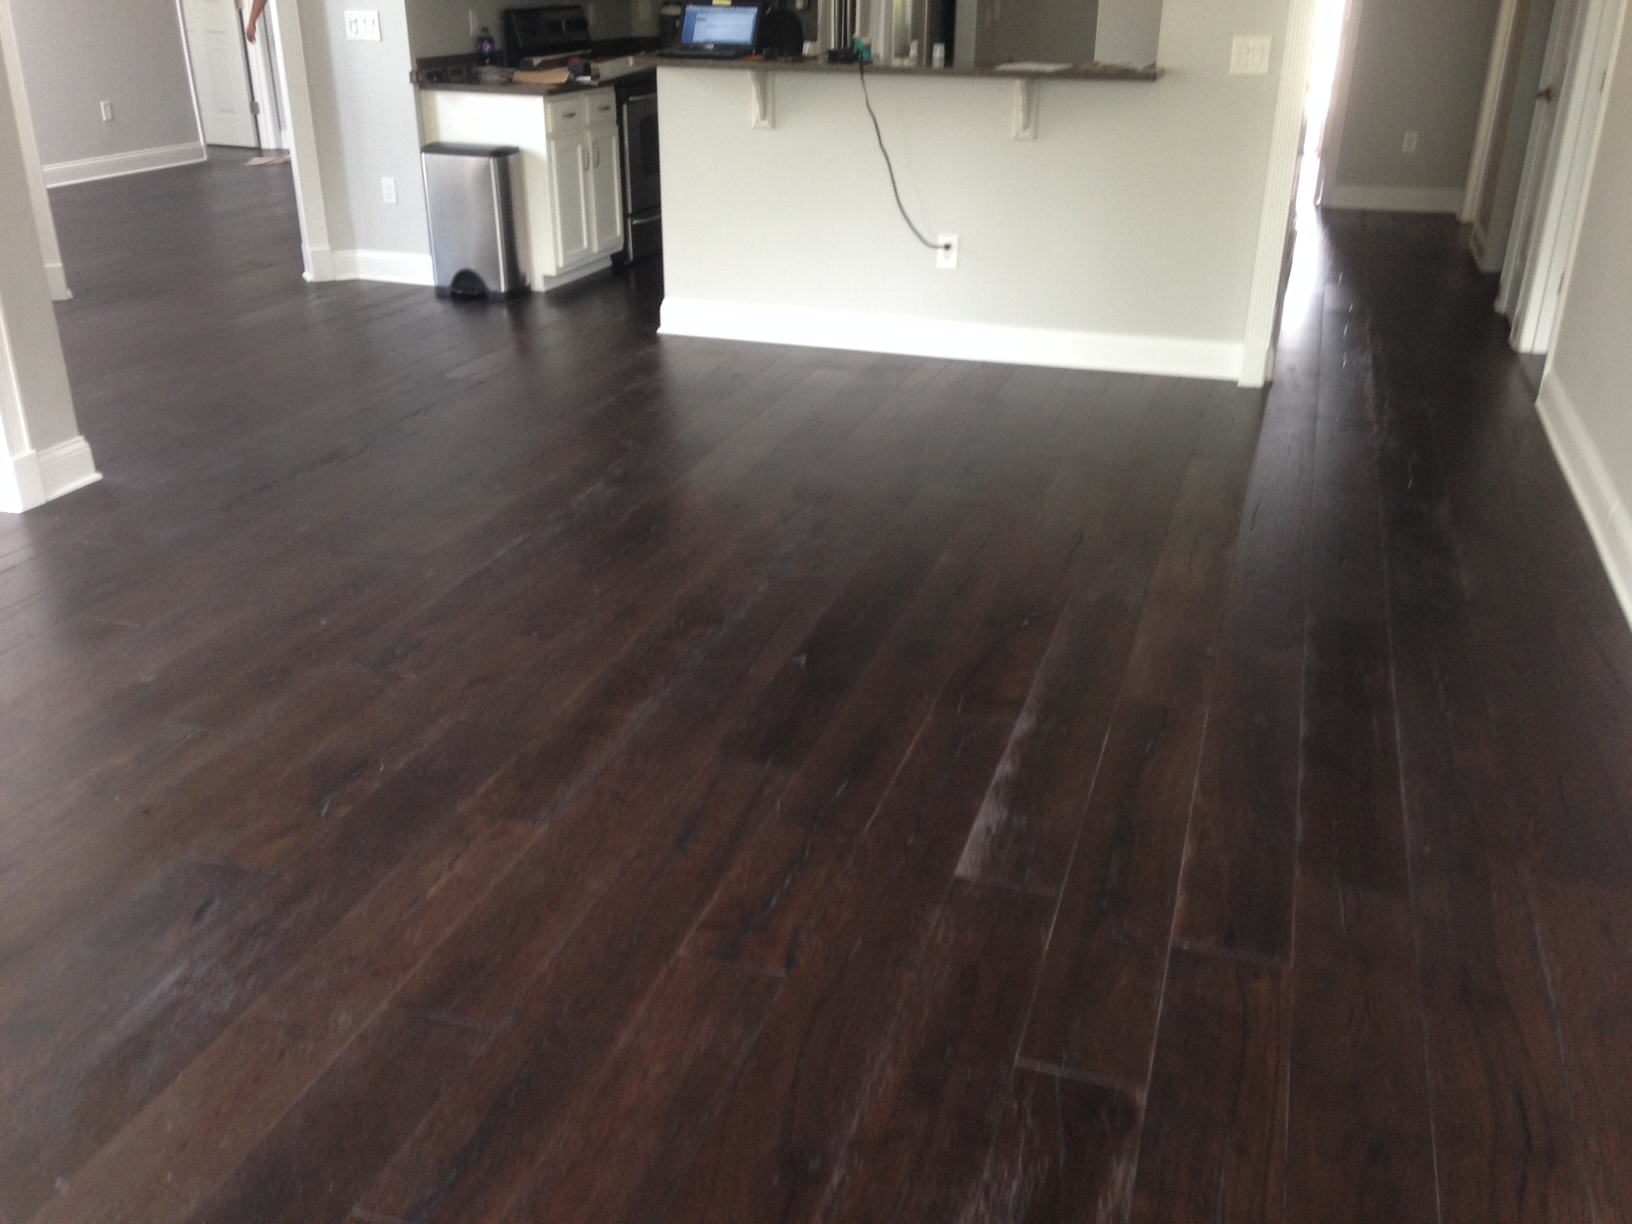 Flood Water Flooring Replacement In South Jax Beach